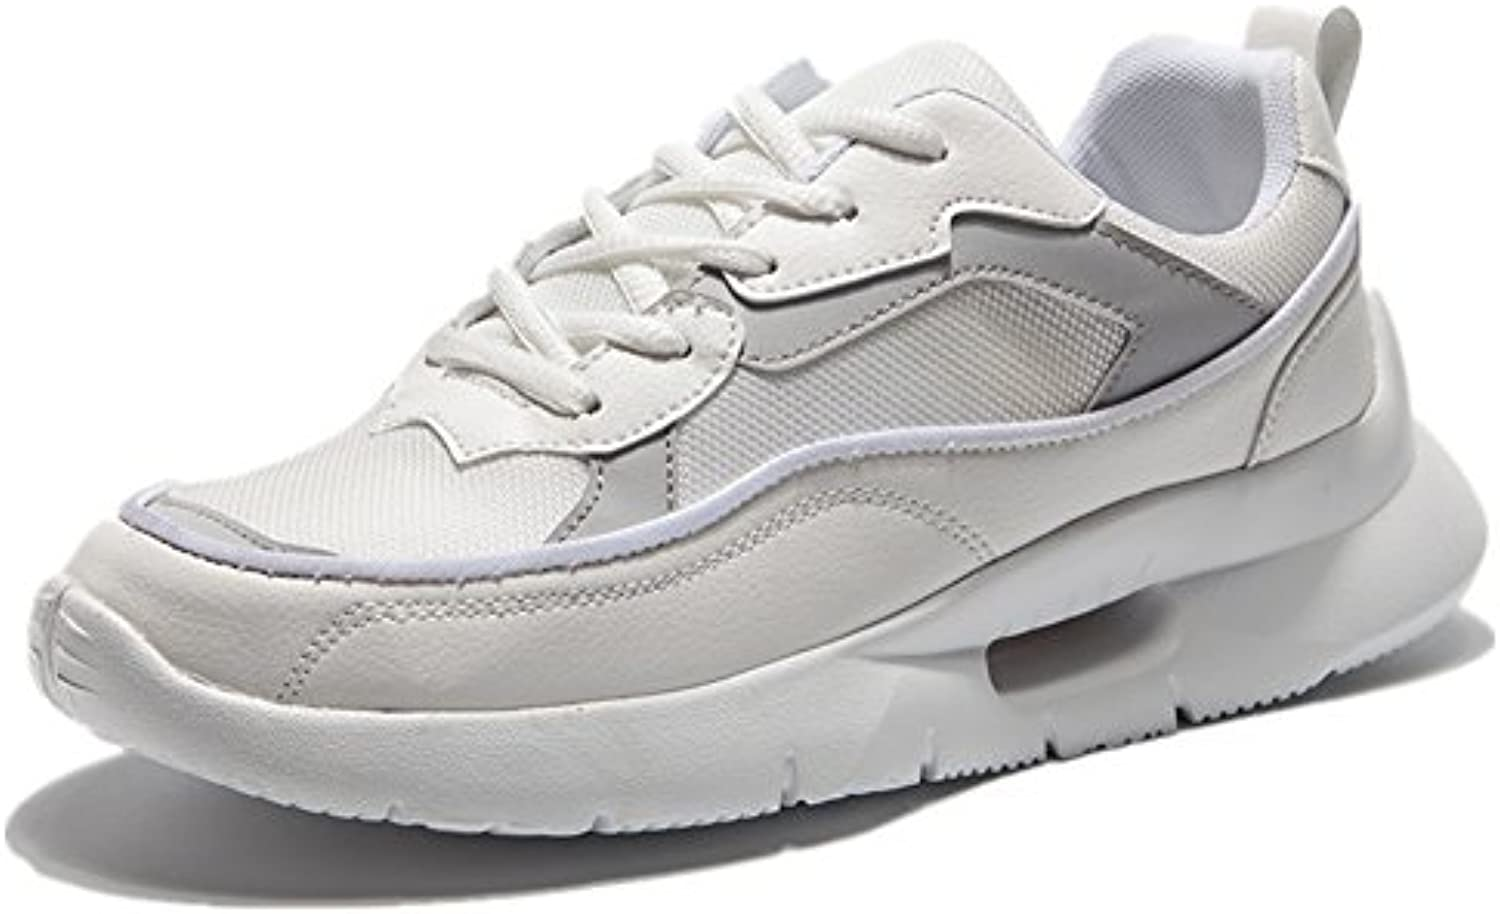 Toptak Herren Wildleder Low Top Laufschuhe Athletic Walking Fitness Schuhe Weiß